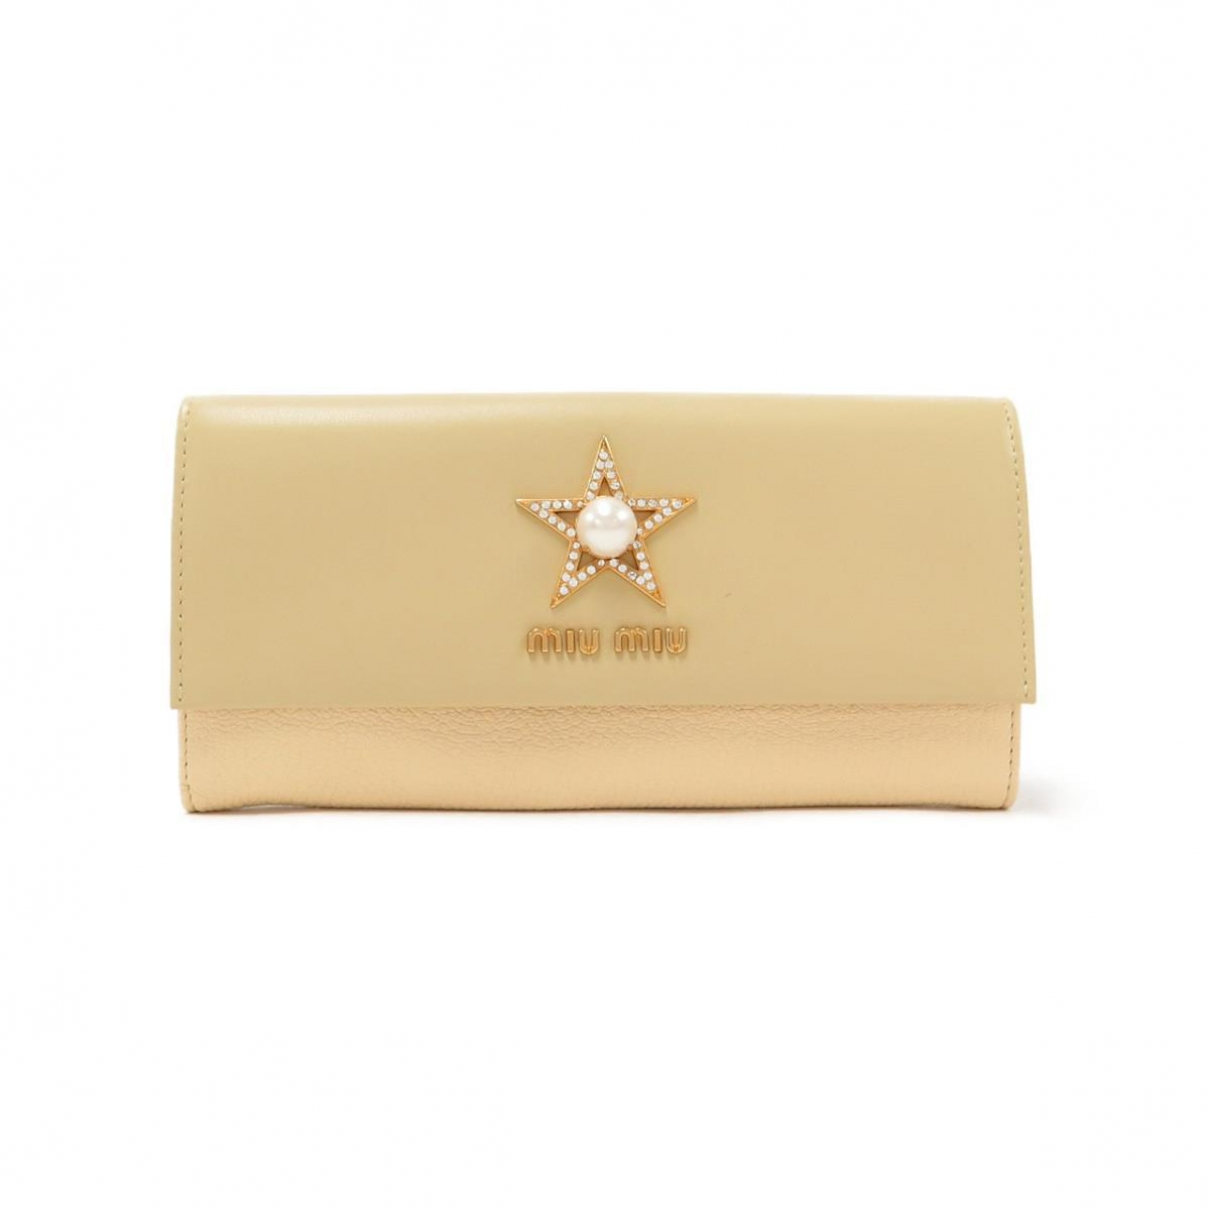 Miu Miu \N Beige Leather wallet for Women \N